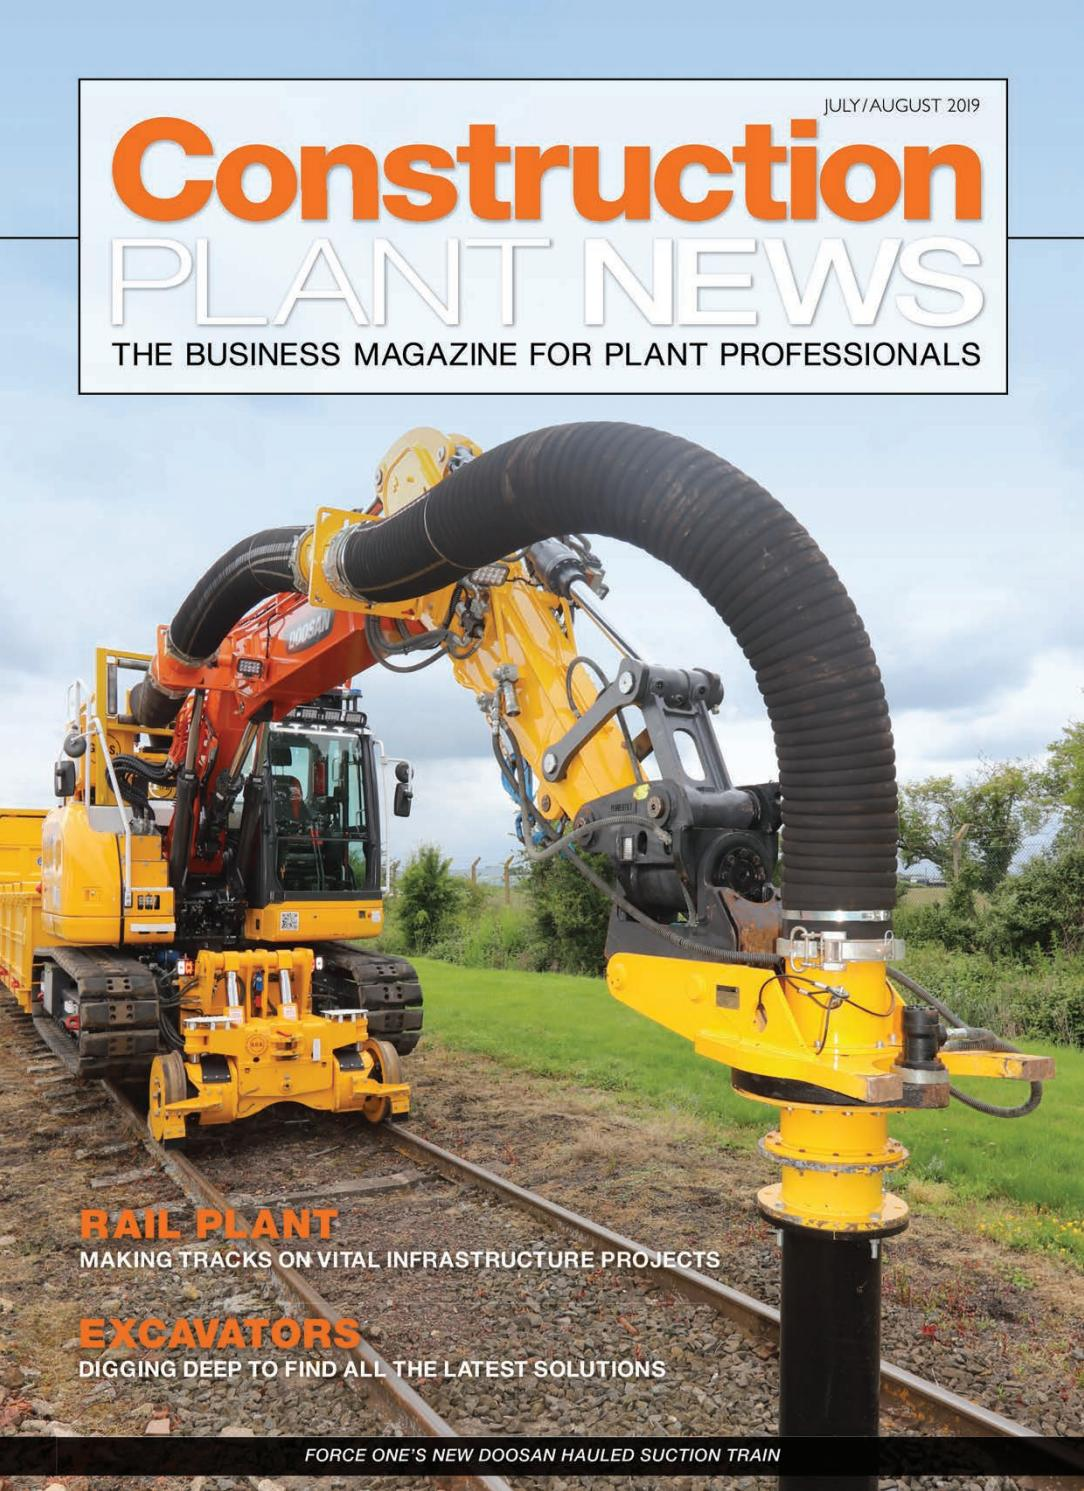 Construction Plant News July-August 19 by Hamerville Media